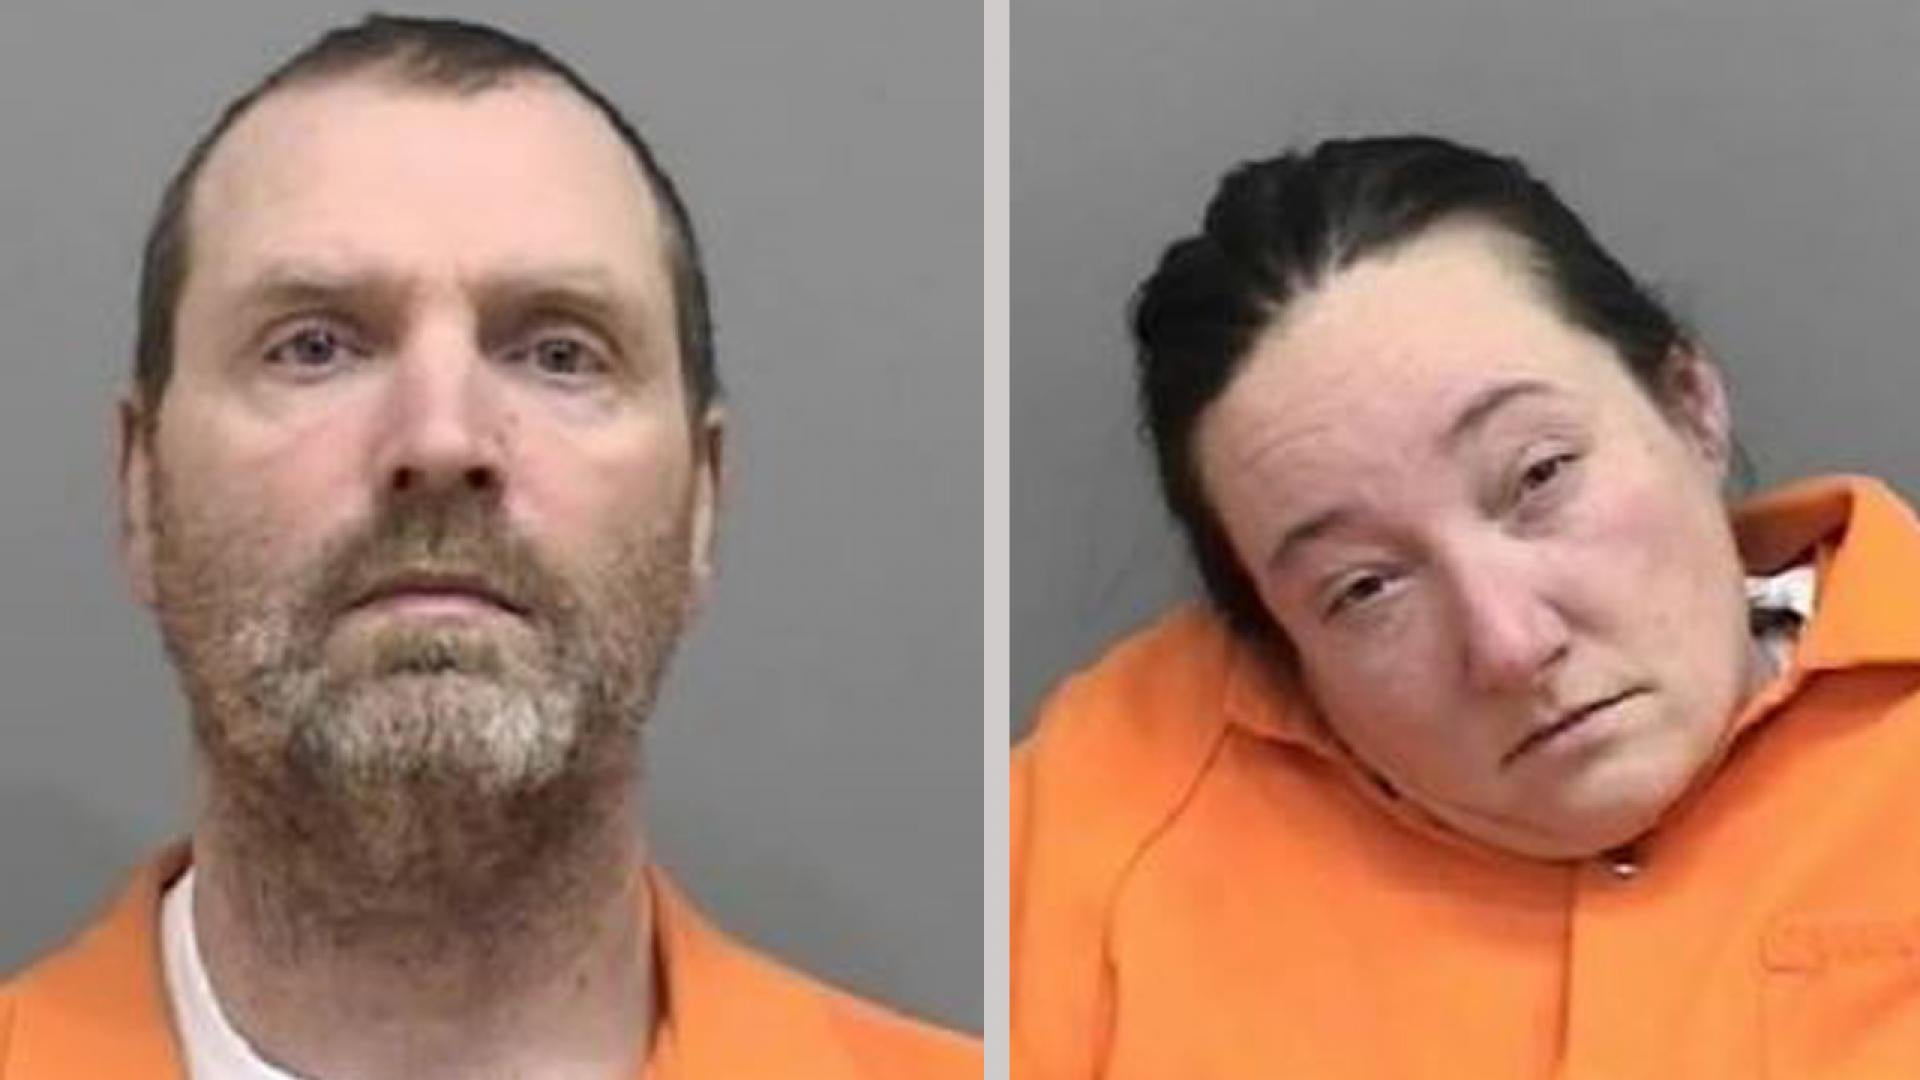 Timothy and Tina Hauschultz have been charged in the death of a 7-year-old boy.